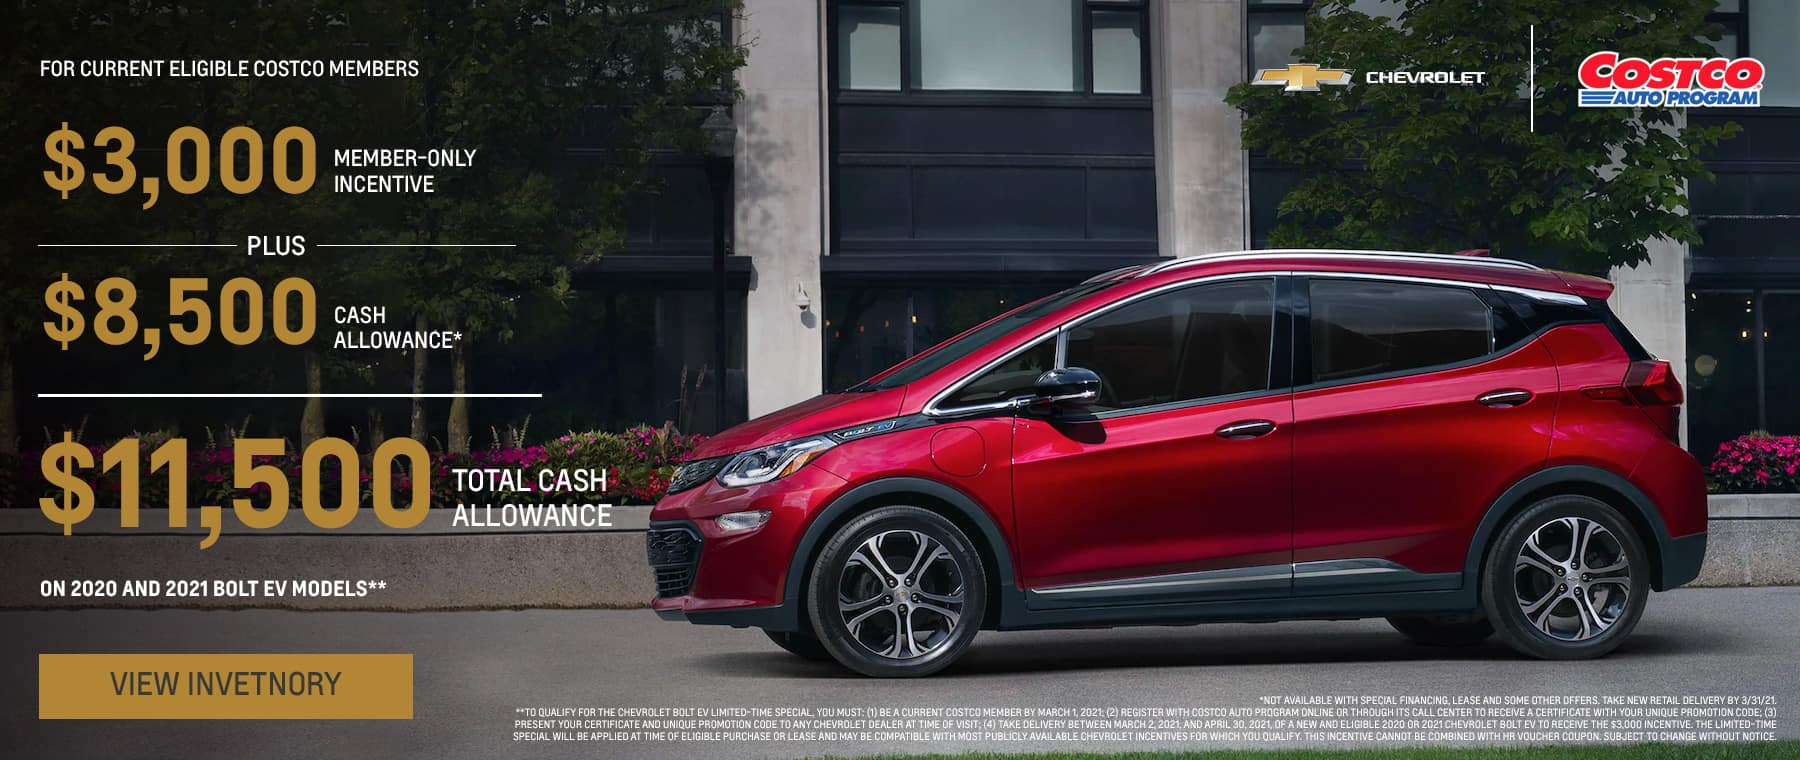 For Current Eligible Costco Members $3,000 Member-Only Incentive + $8,500 Cash Allowance* | $11,500 Total Cash Allowance, On 2020 and 2021 Bolt EV models**